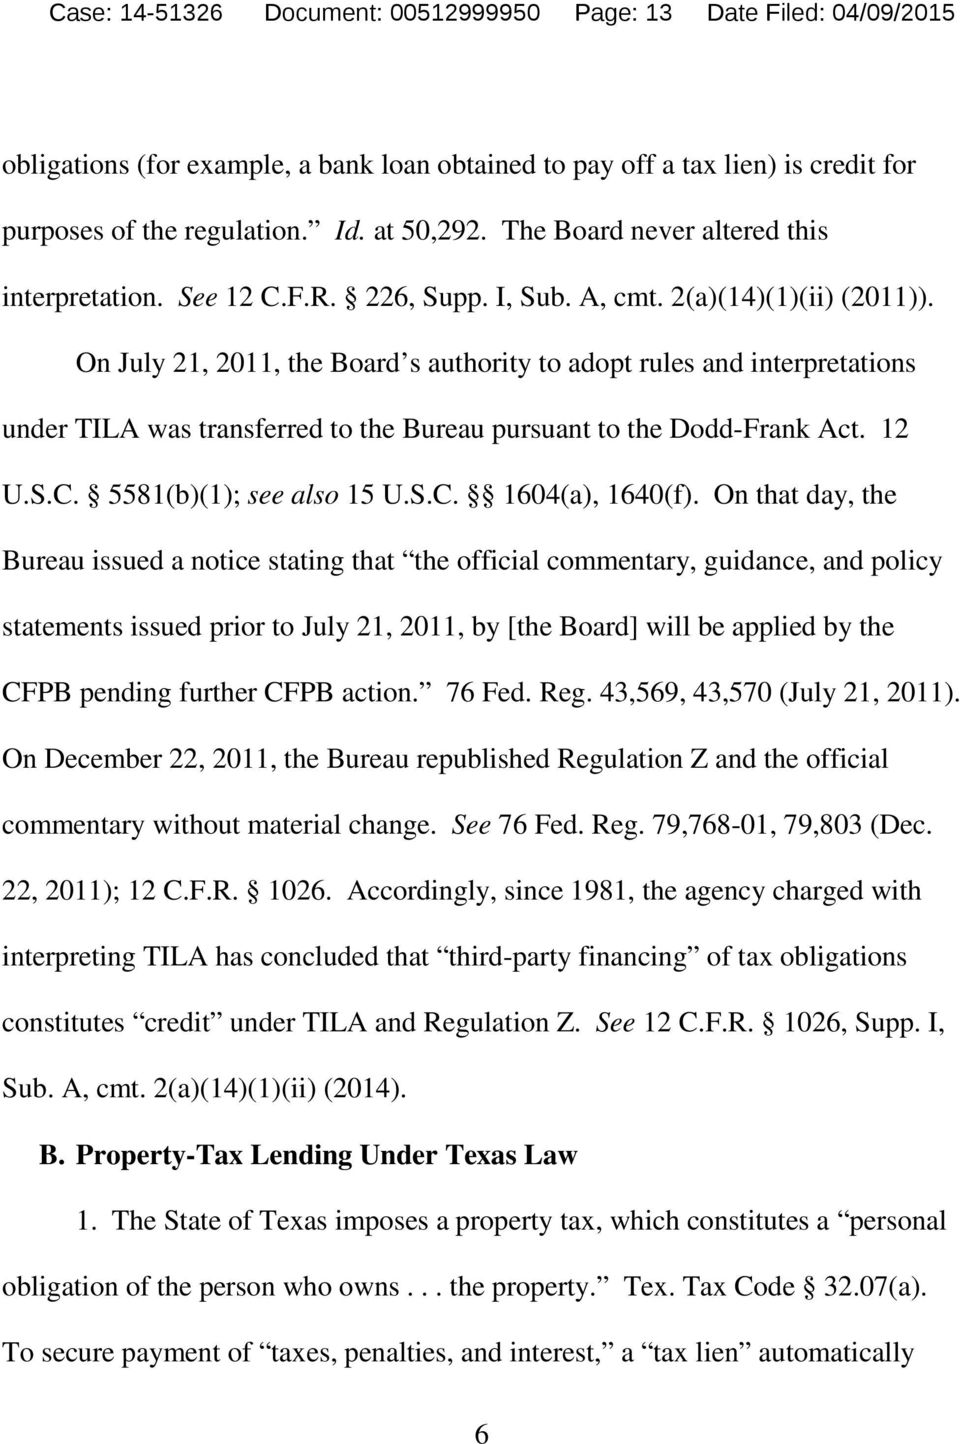 On July 21, 2011, the Board s authority to adopt rules and interpretations under TILA was transferred to the Bureau pursuant to the Dodd-Frank Act. 12 U.S.C. 5581(b)(1); see also 15 U.S.C. 1604(a), 1640(f).